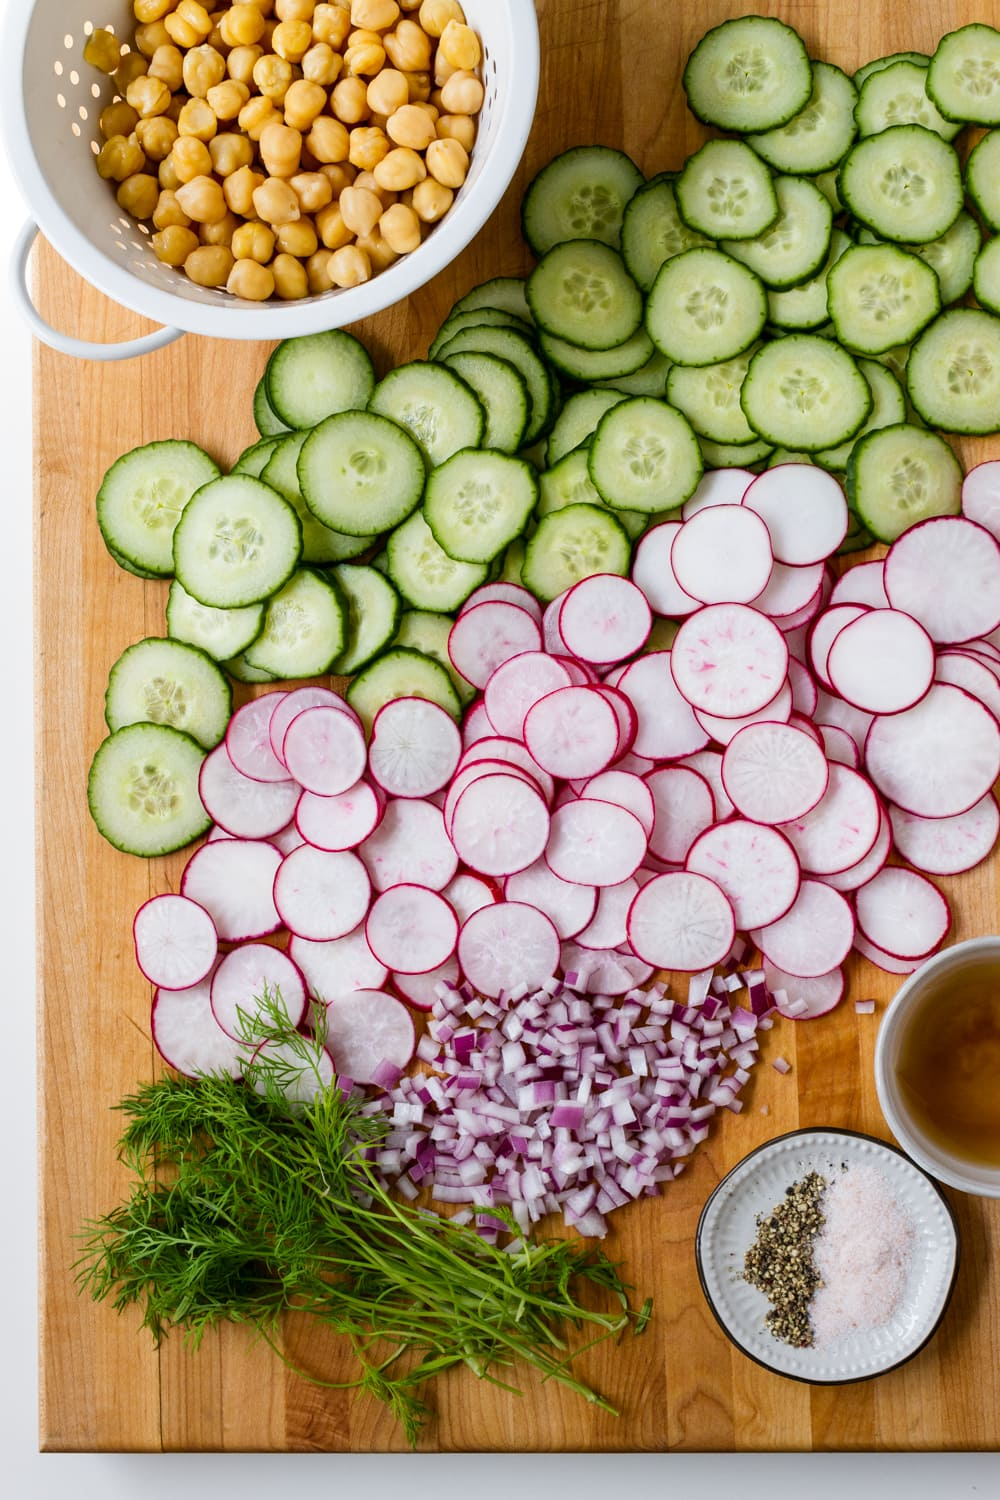 top down view of a wooden cutting board with sliced radishes, cucumbers, diced red onion, whole chickpeas in a small white colander, dill, apple cider vinegar and small dish with salt and pepper